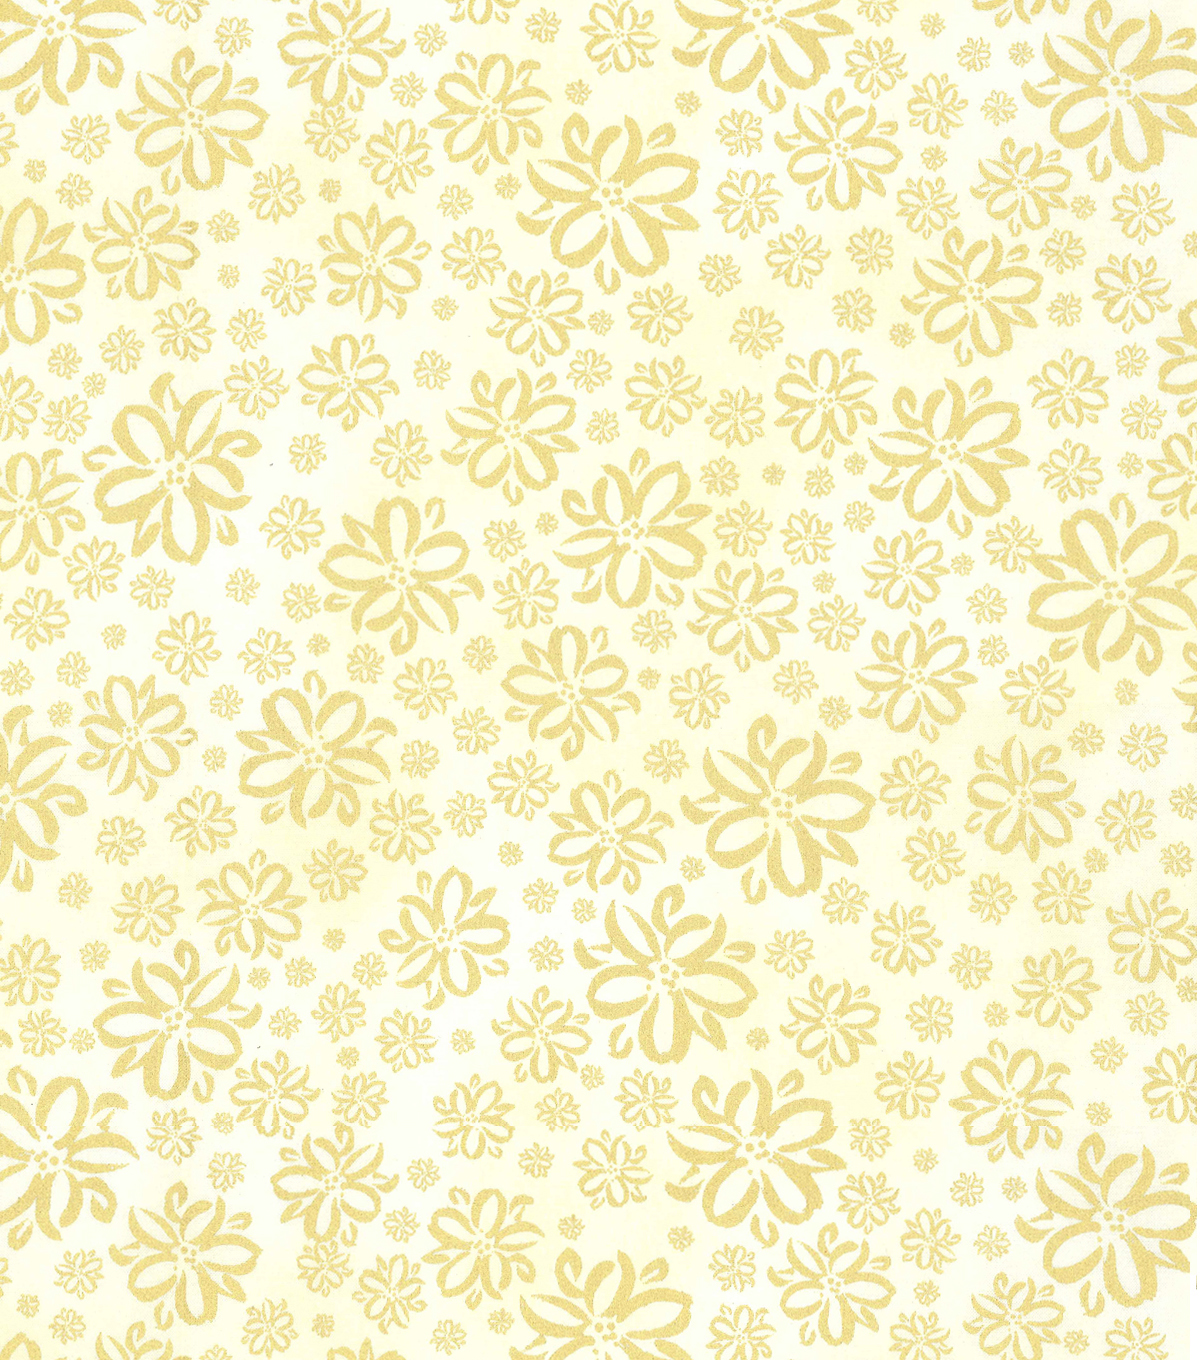 Kathy Davis® Cotton Fabric 44''-Floral Sketch on Cream